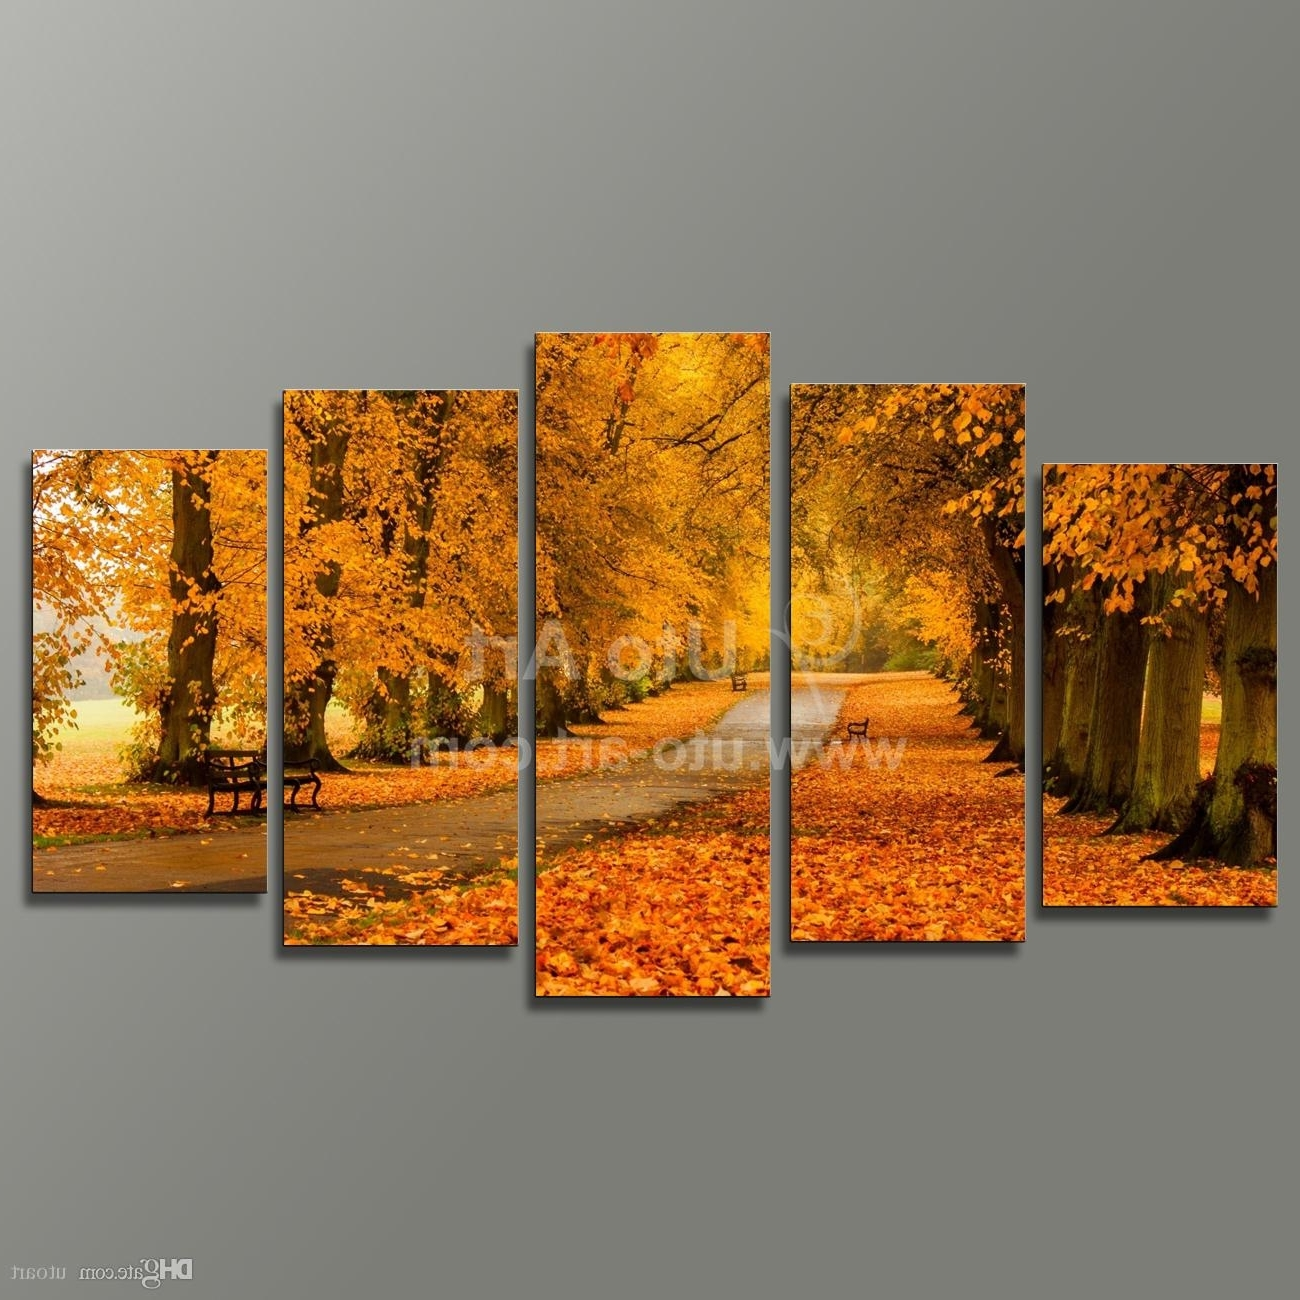 Wall Art Canvas Pertaining To Famous Best Modern Modular Paintings On Canvas 5 Panel Wall Art Painting Of (View 13 of 15)